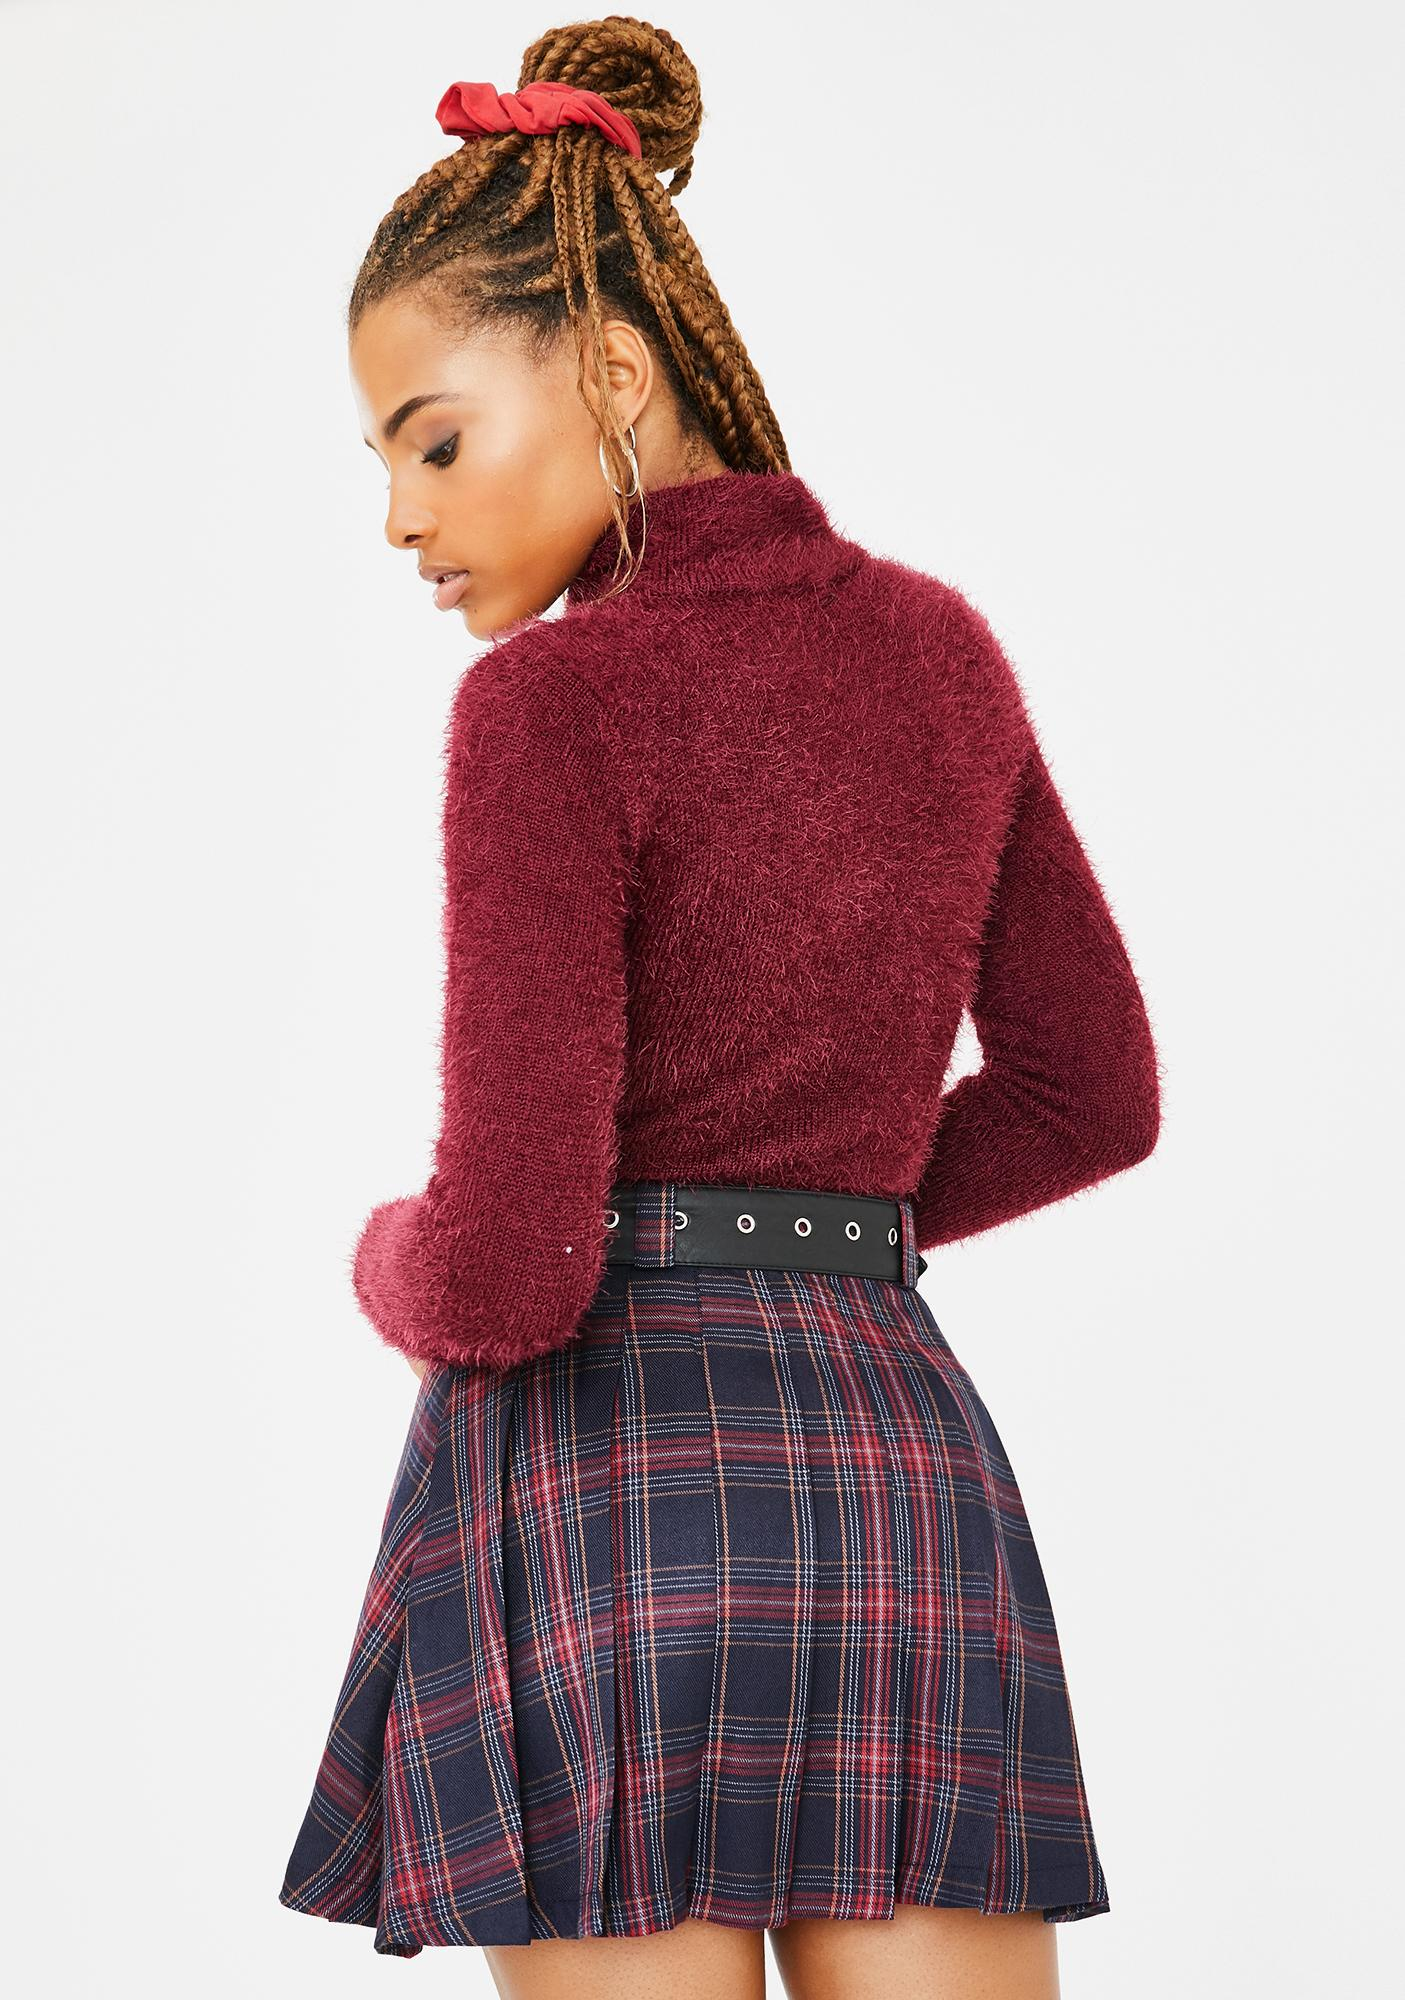 Current Mood Private School Rebel Plaid Skirt